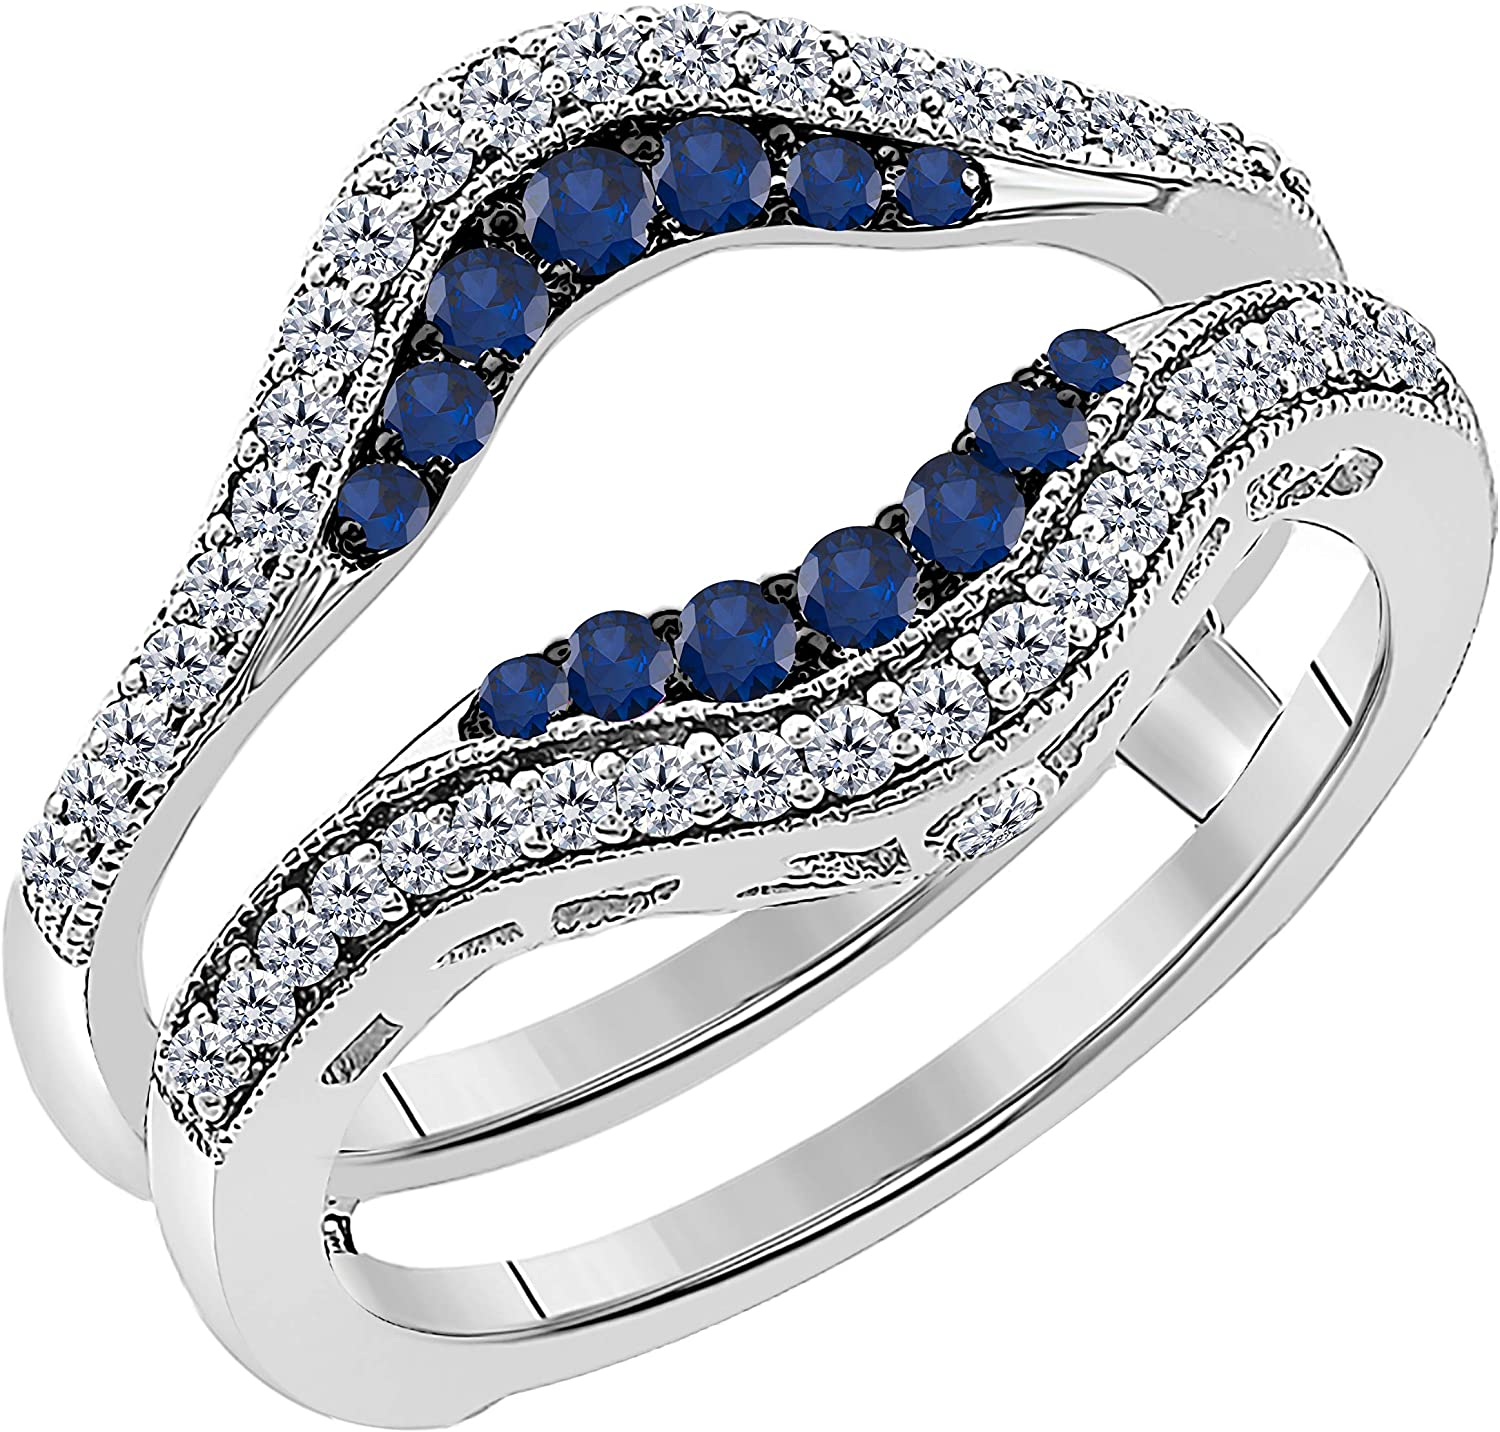 Women's 14k White Gold Plated in 925 Sterling Silver Double Row Pave Set 0.50 ctw CZ Blue Sapphire & Cubic Zirconia Round Wedding Band Solitaire Enhancer Guard Wrap Ring